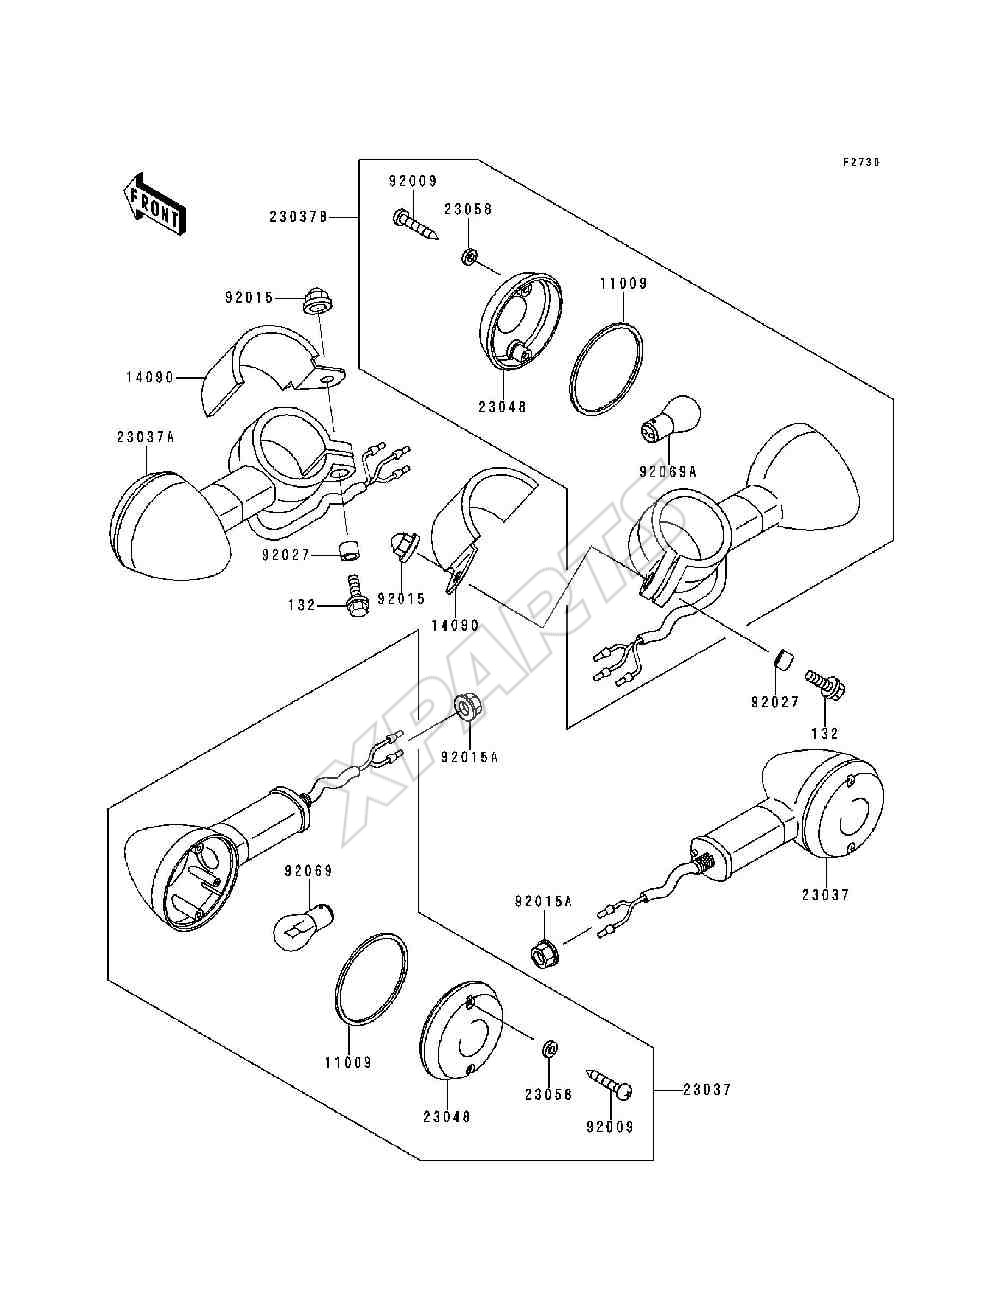 1982 Kawasaki Intruder Snowmobile Wiring Diagram Ask Answer For K Z Ltd 750 Kz1000p Motorcycle Diagrams Simple House Odicis 1978 Components